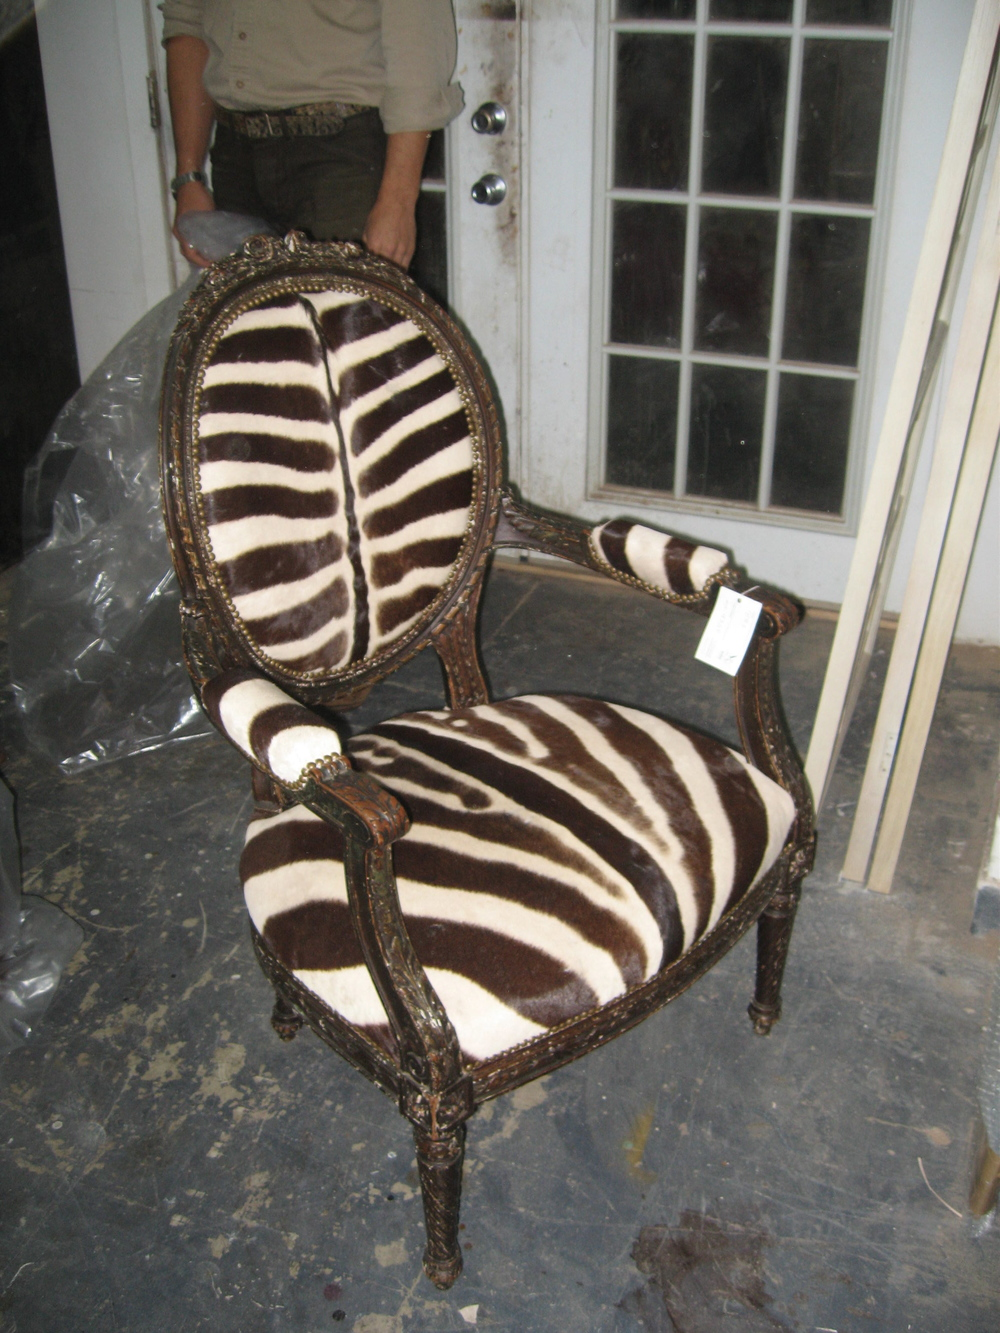 The Elusive Brown Zebra found a Home.